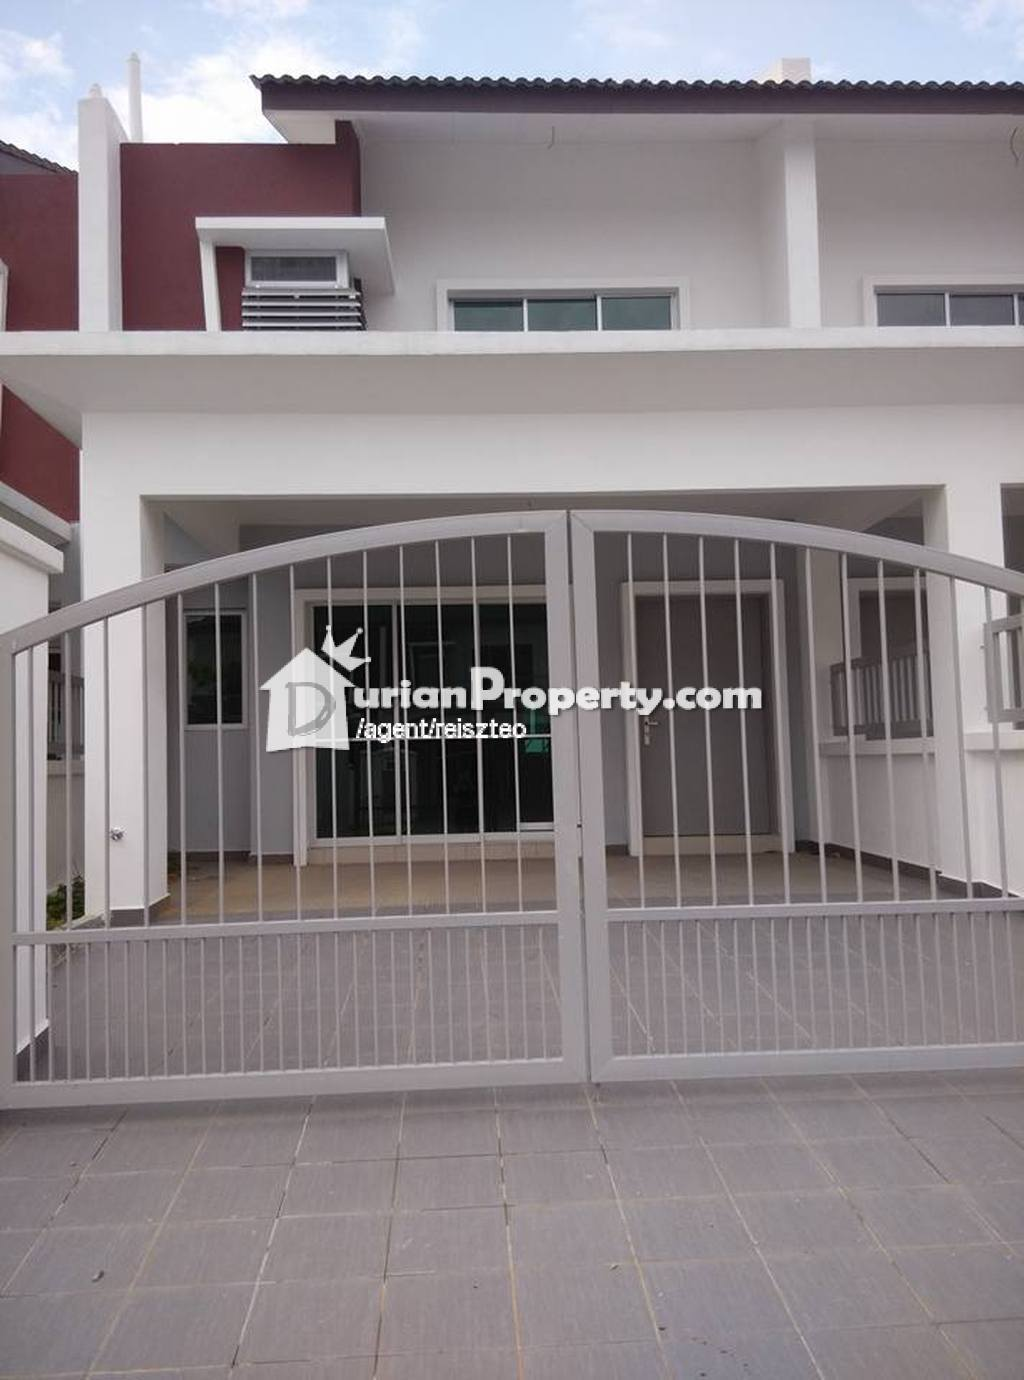 Terrace house for rent at s2 heights seremban 2 for rm for Terrace house season 2